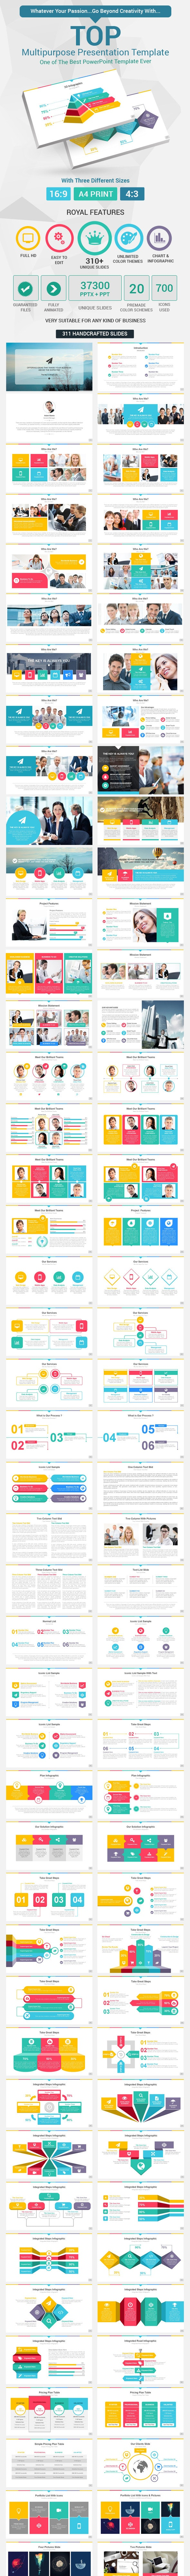 Top PowerPoint Presentation Template - PowerPoint Templates Presentation Templates